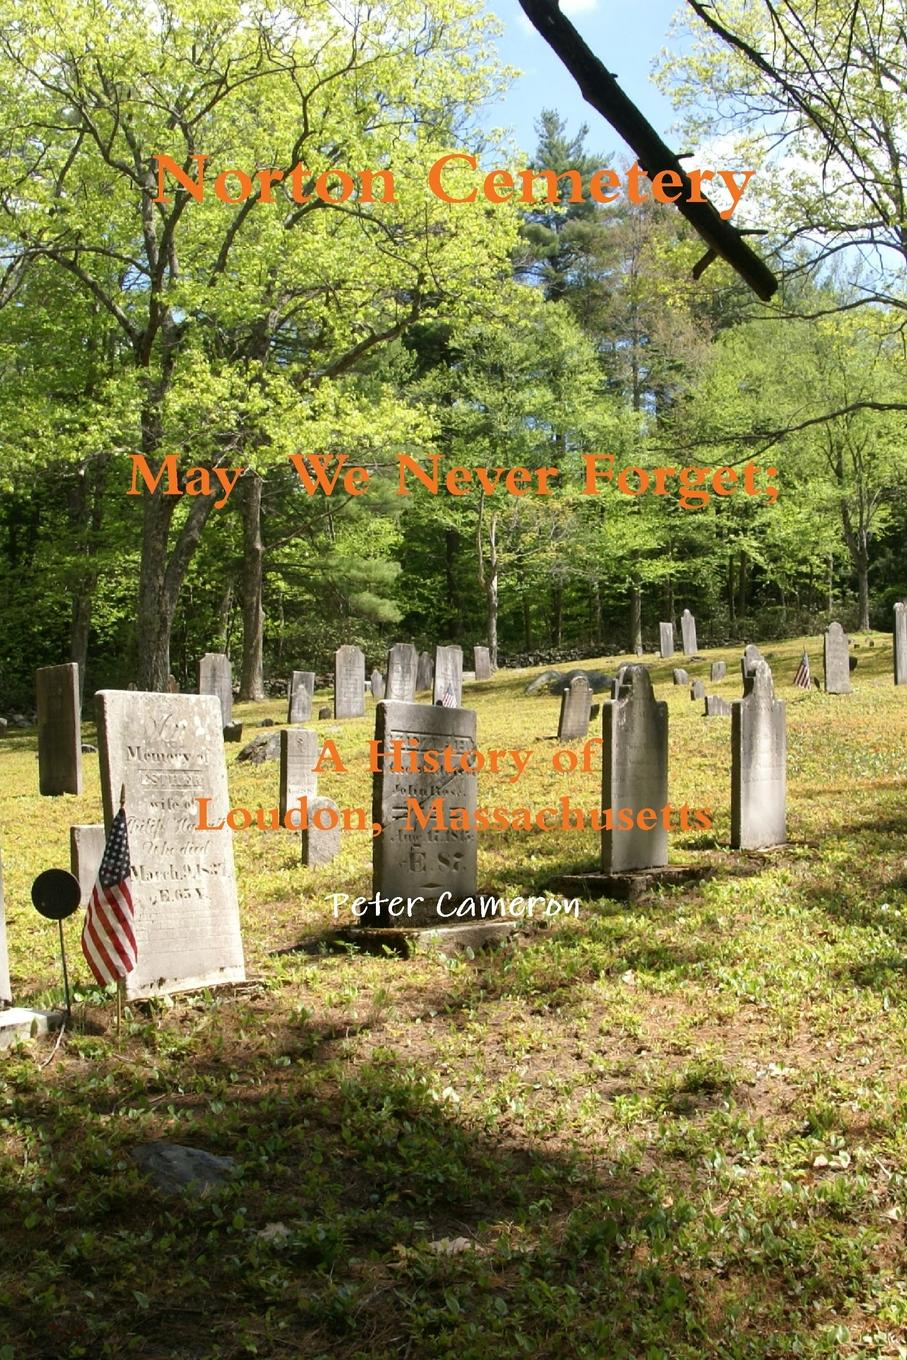 лучшая цена Peter Cameron Norton Cemetery May We Never Forget; A history of Loudon Massachusetts